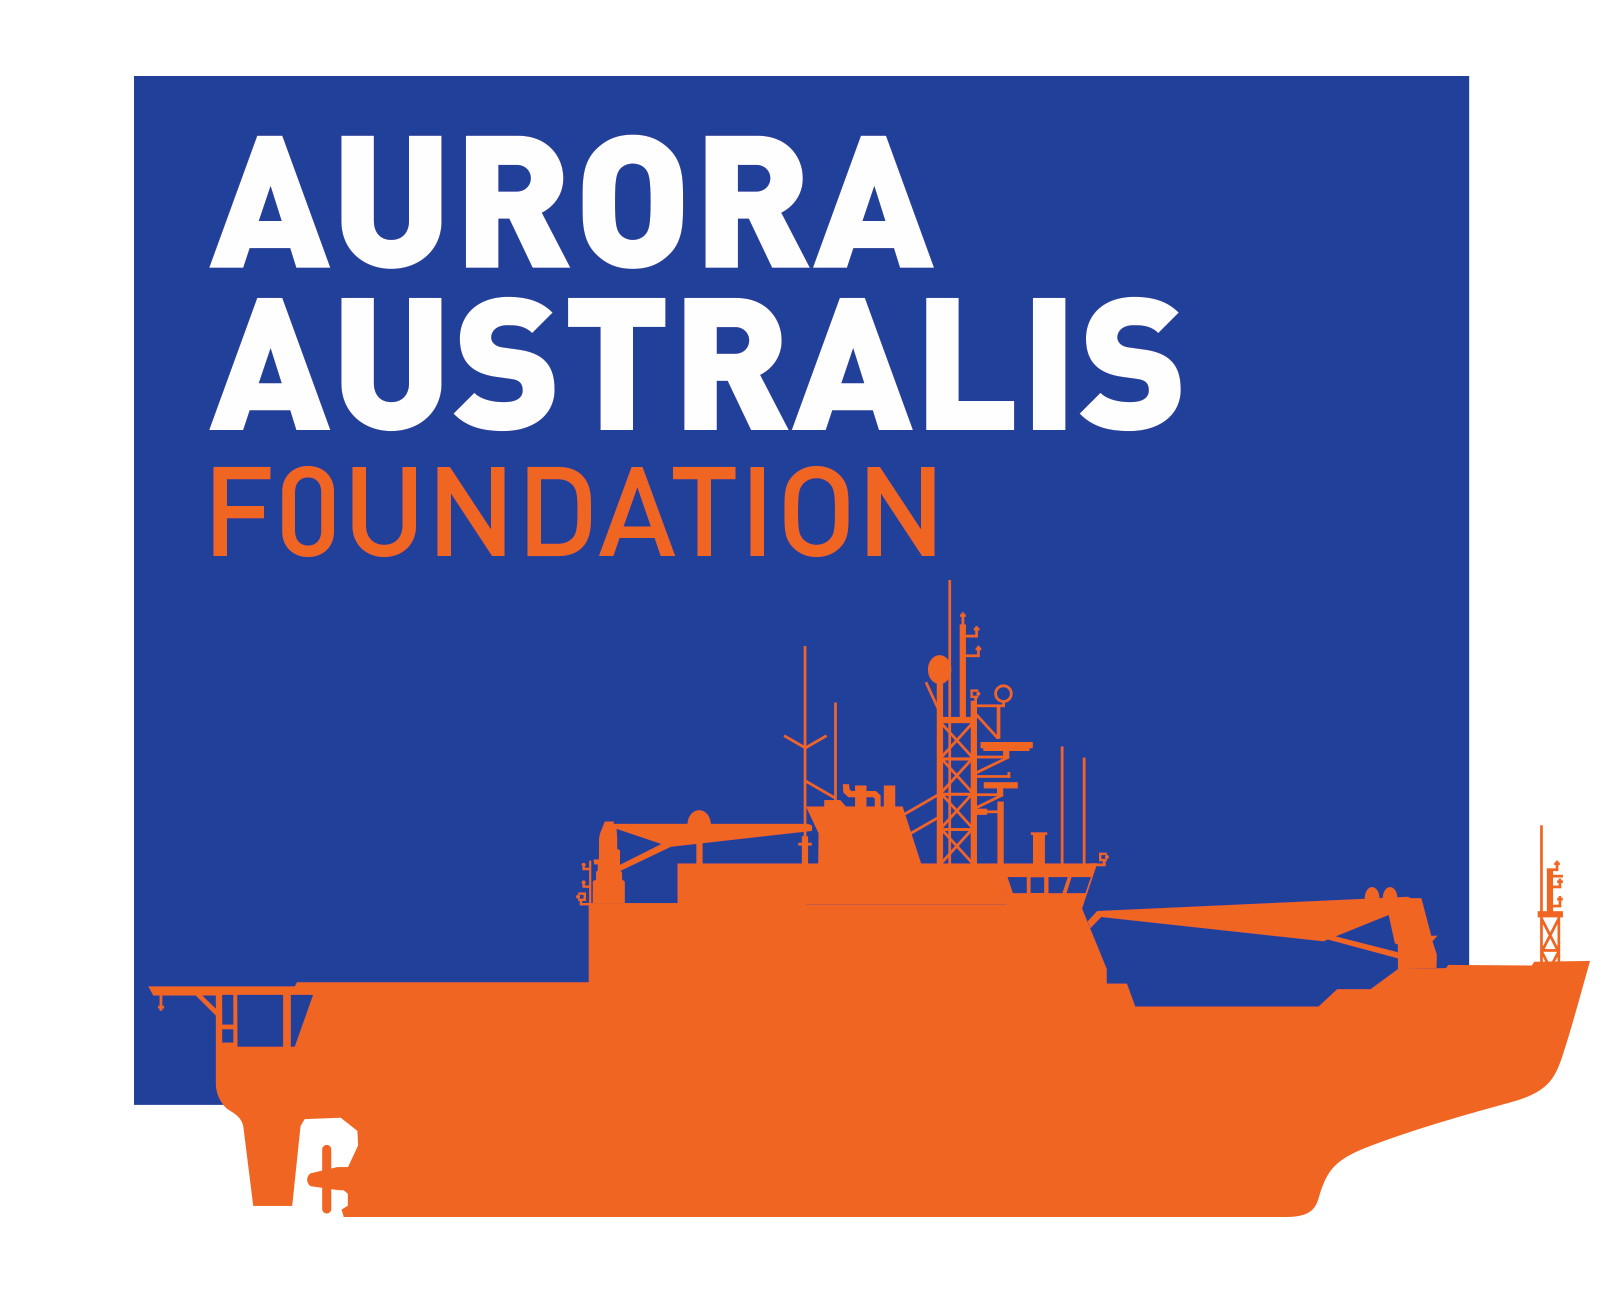 Aurora Australis Foundation